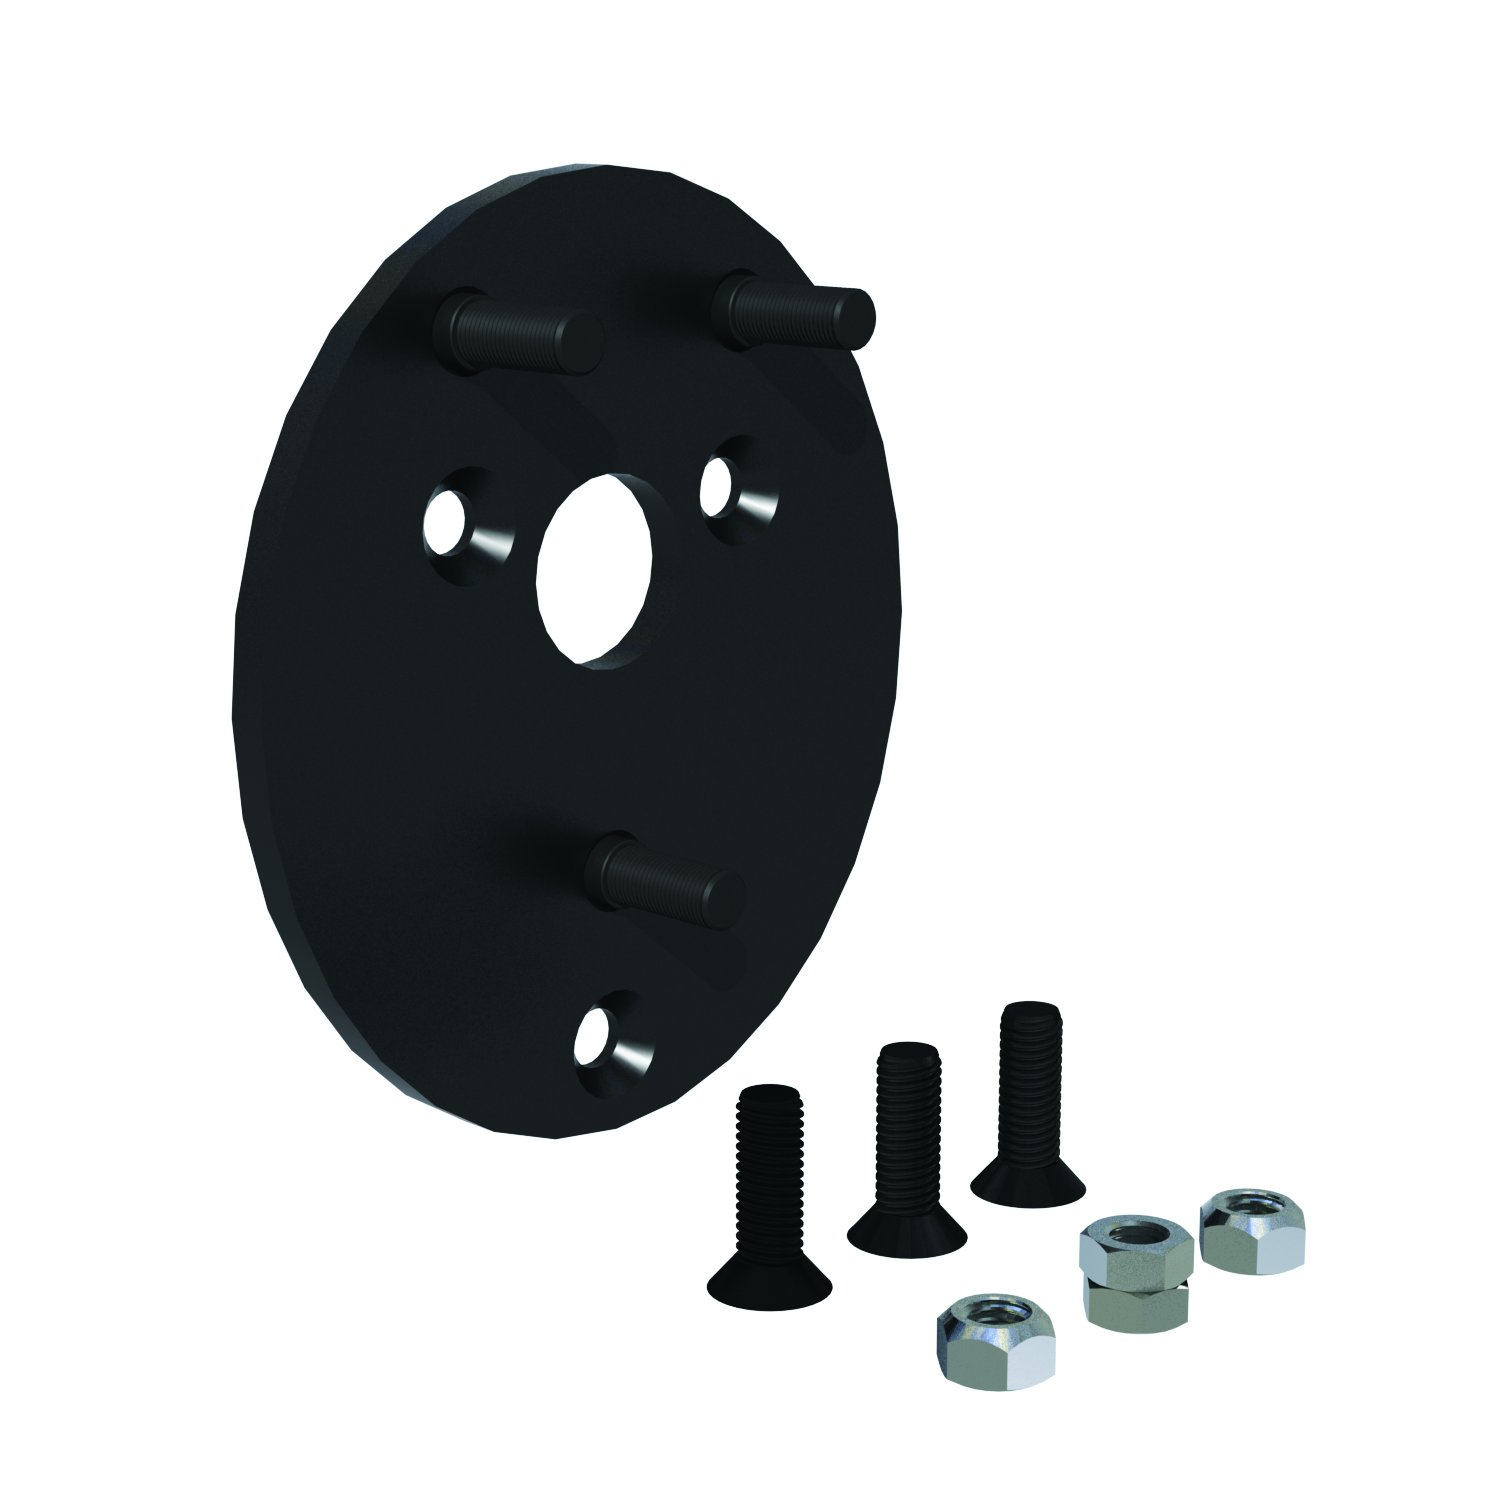 Teraflex 4904200 JK Spare Tire 1.5 Raised Extension Plate Kit